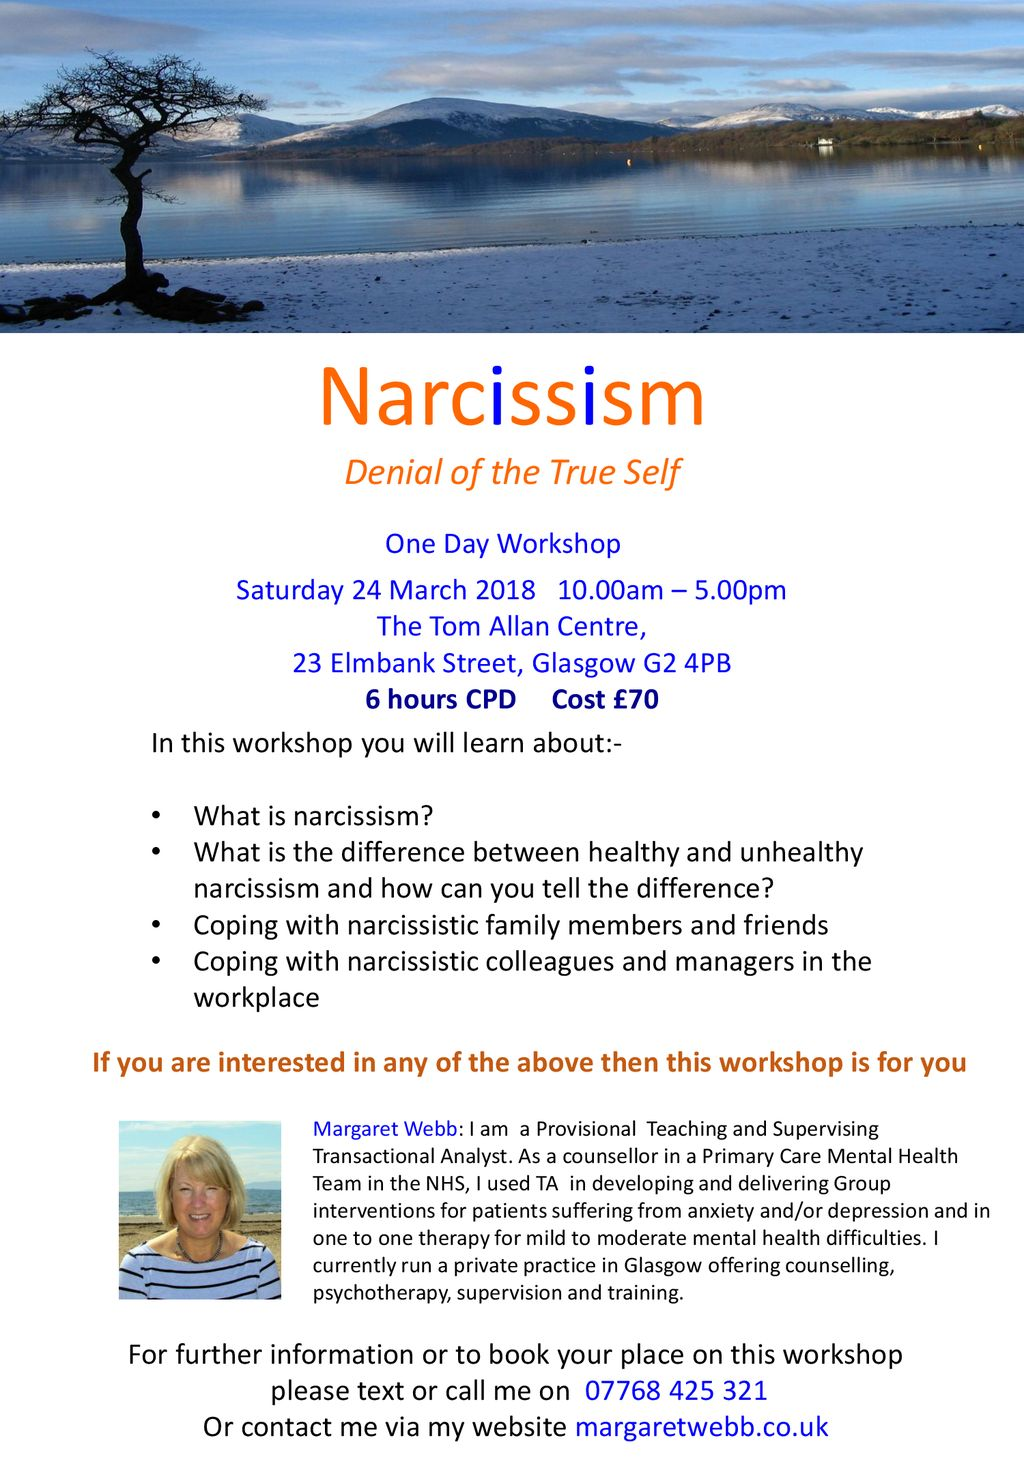 Narcissism Denial of the True Self One Day Workshop - ppt